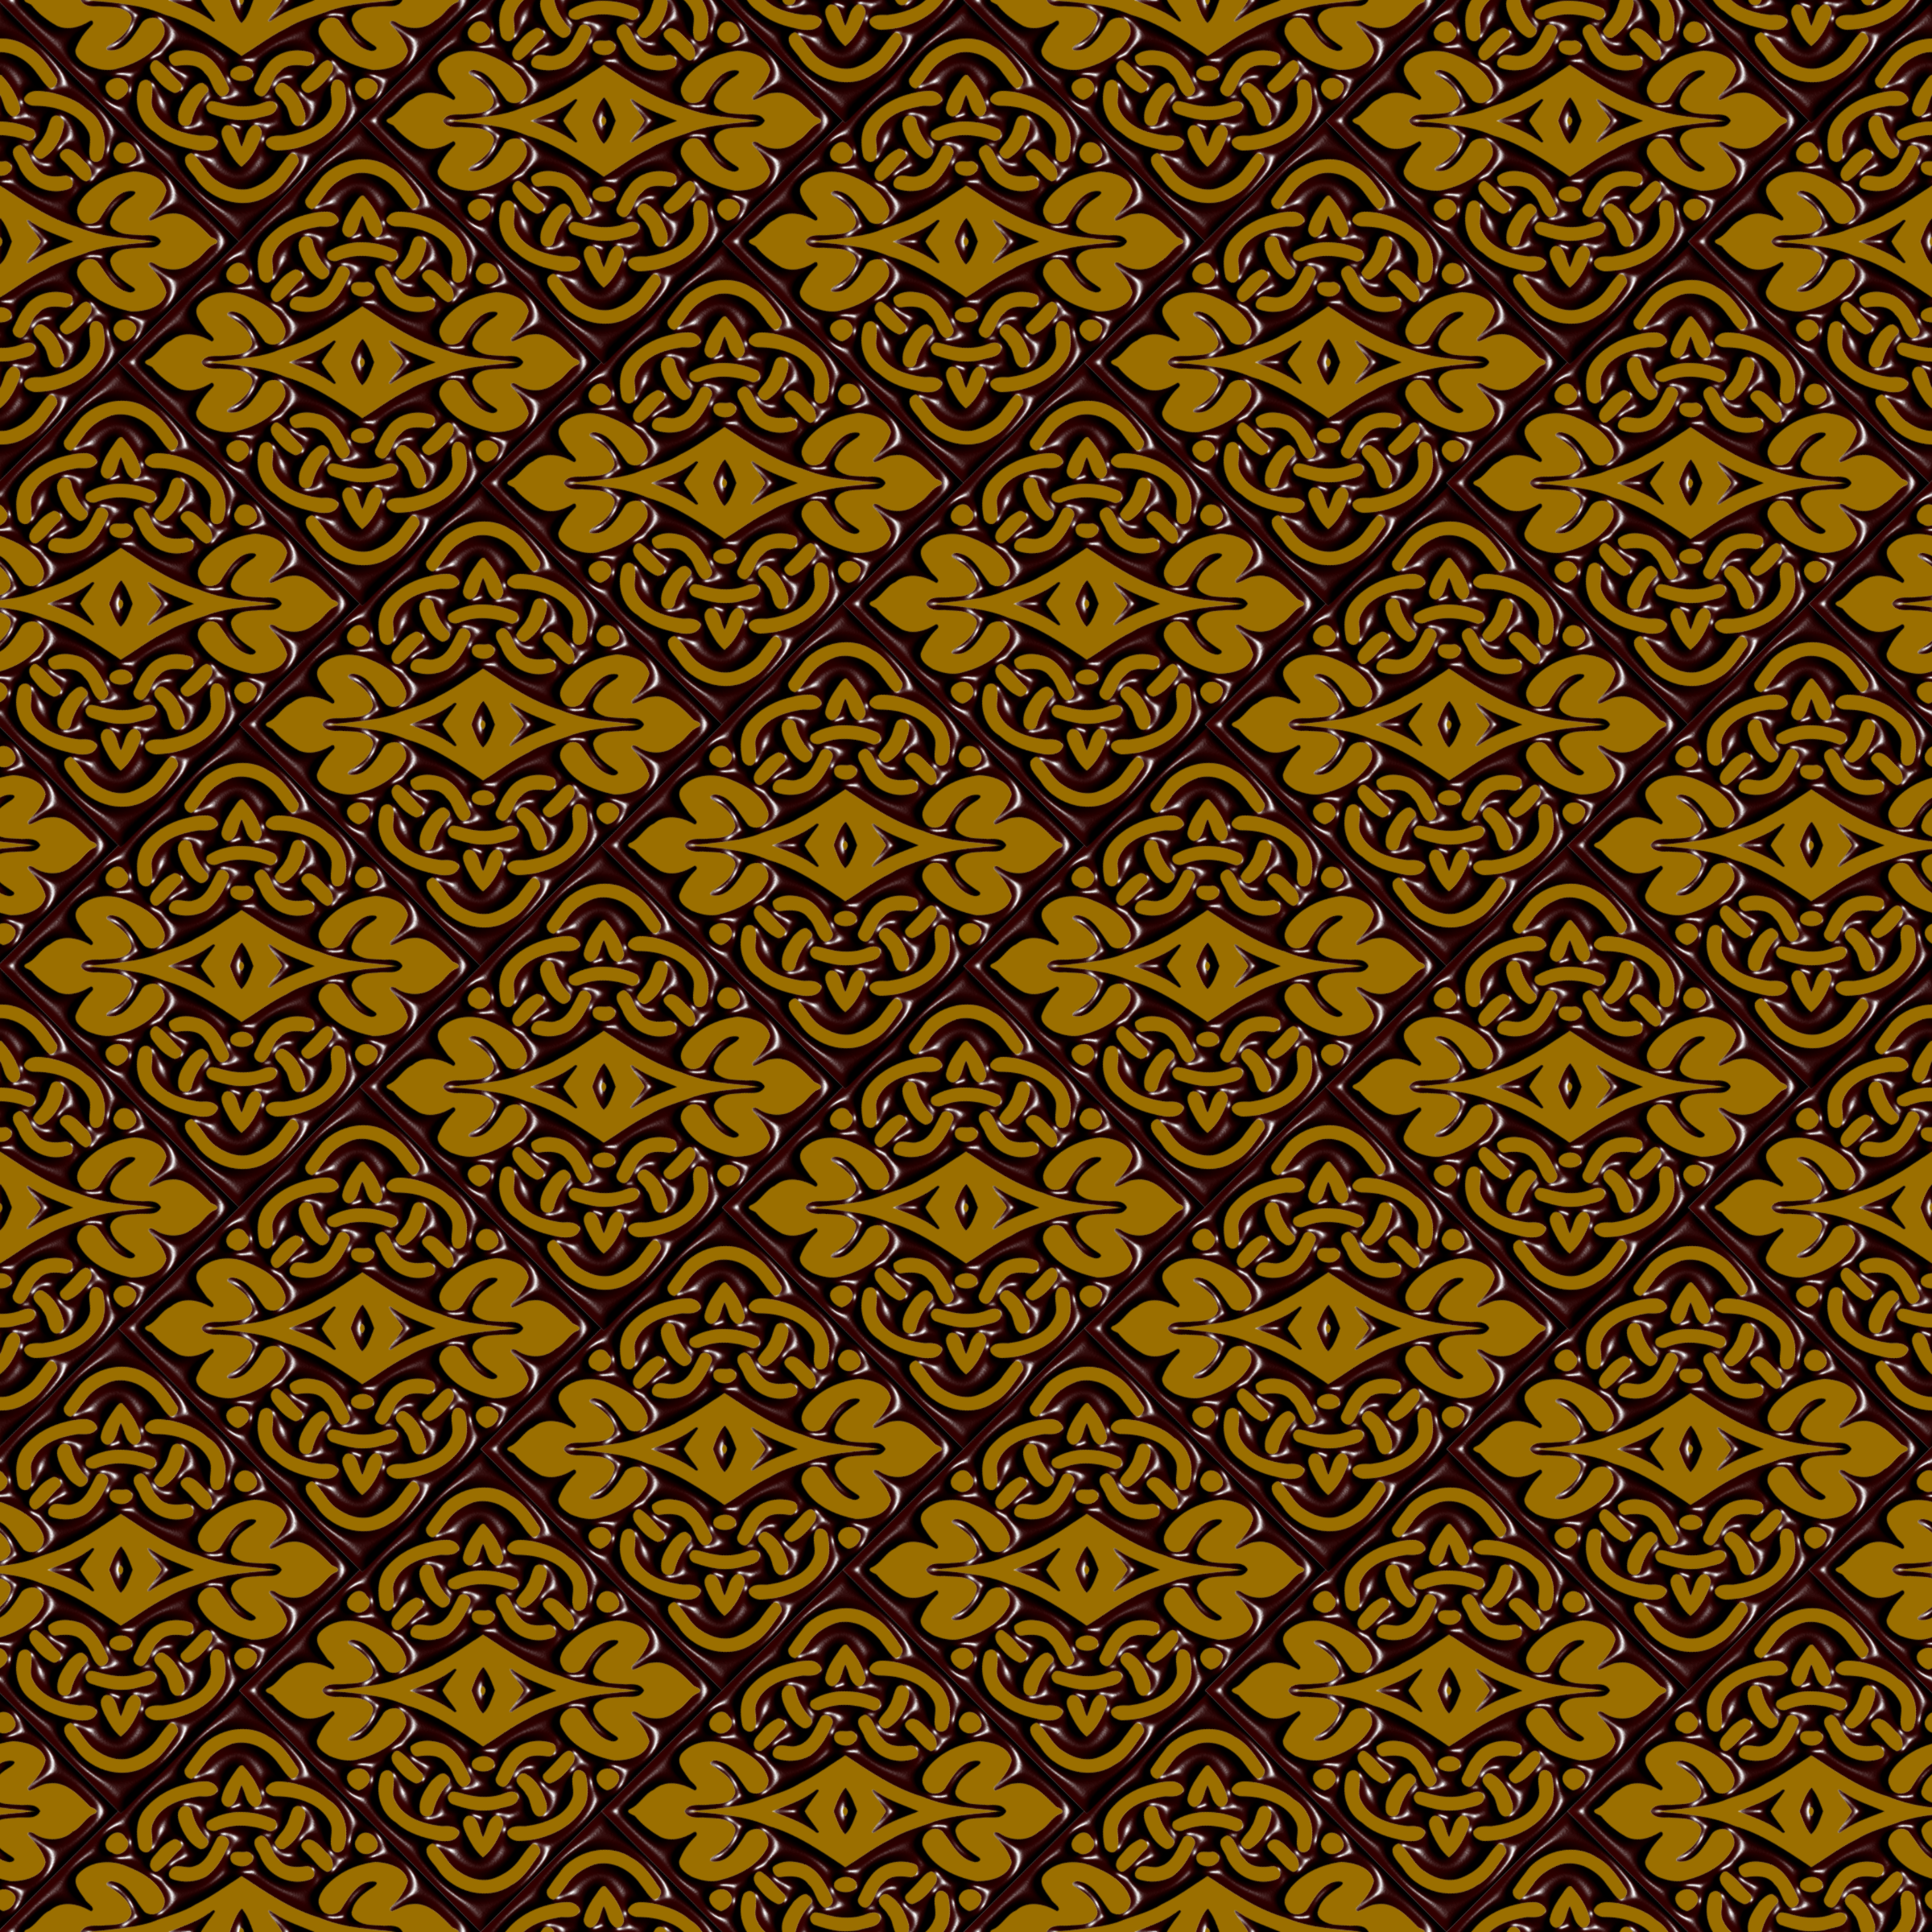 Background pattern 173 (enhanced) by Firkin